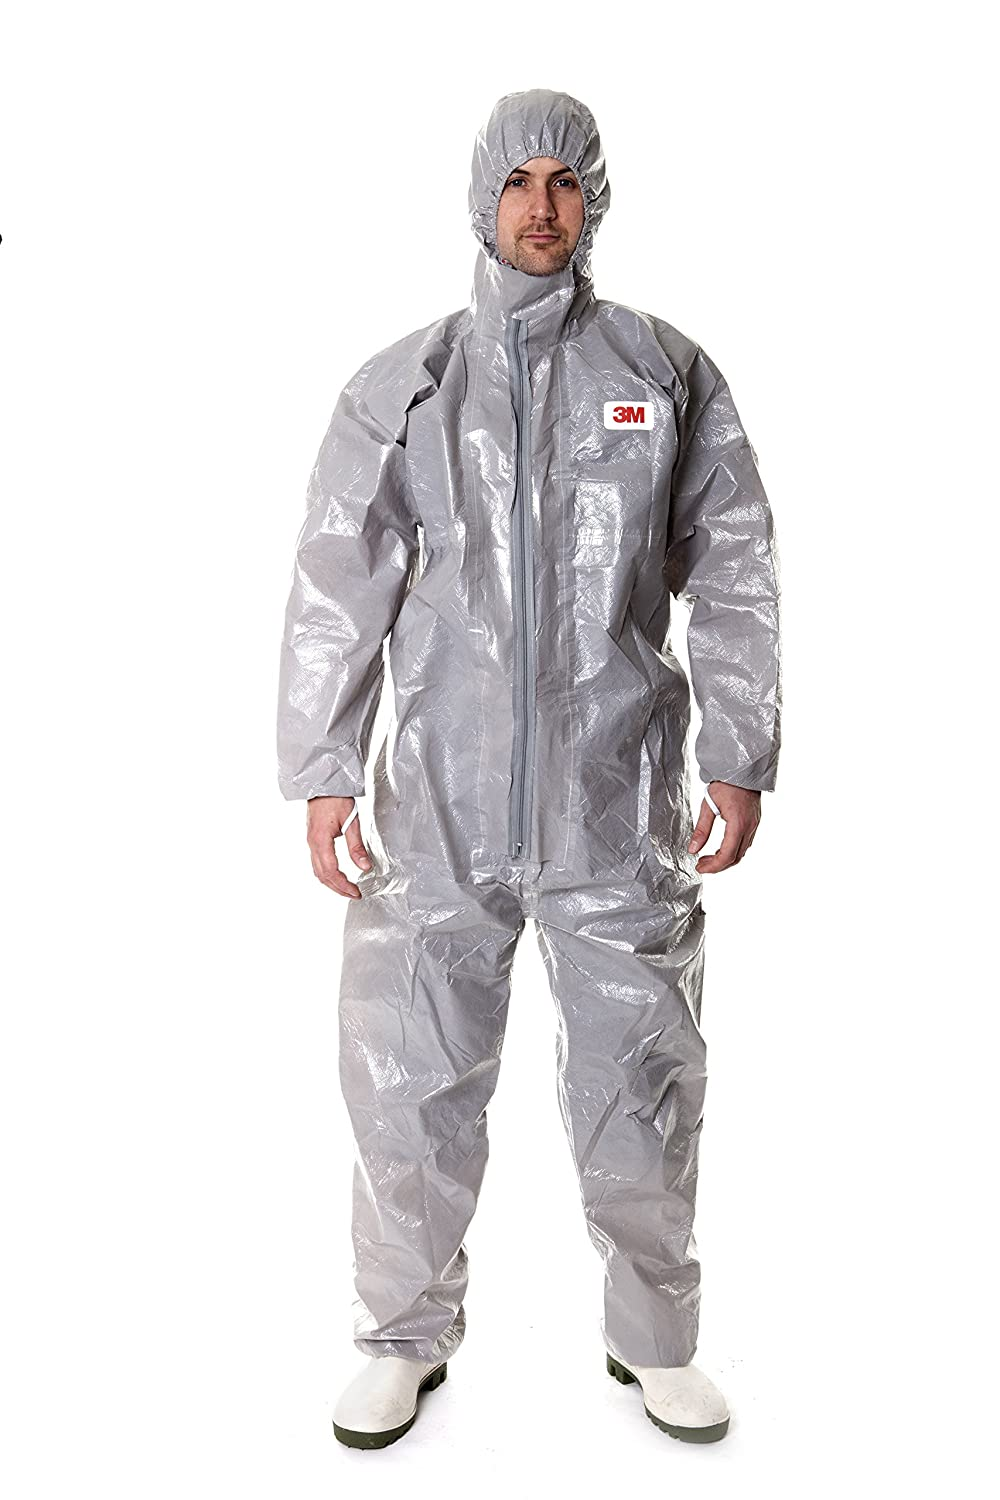 3M Protective Coverall 4570 3XL GT700004903